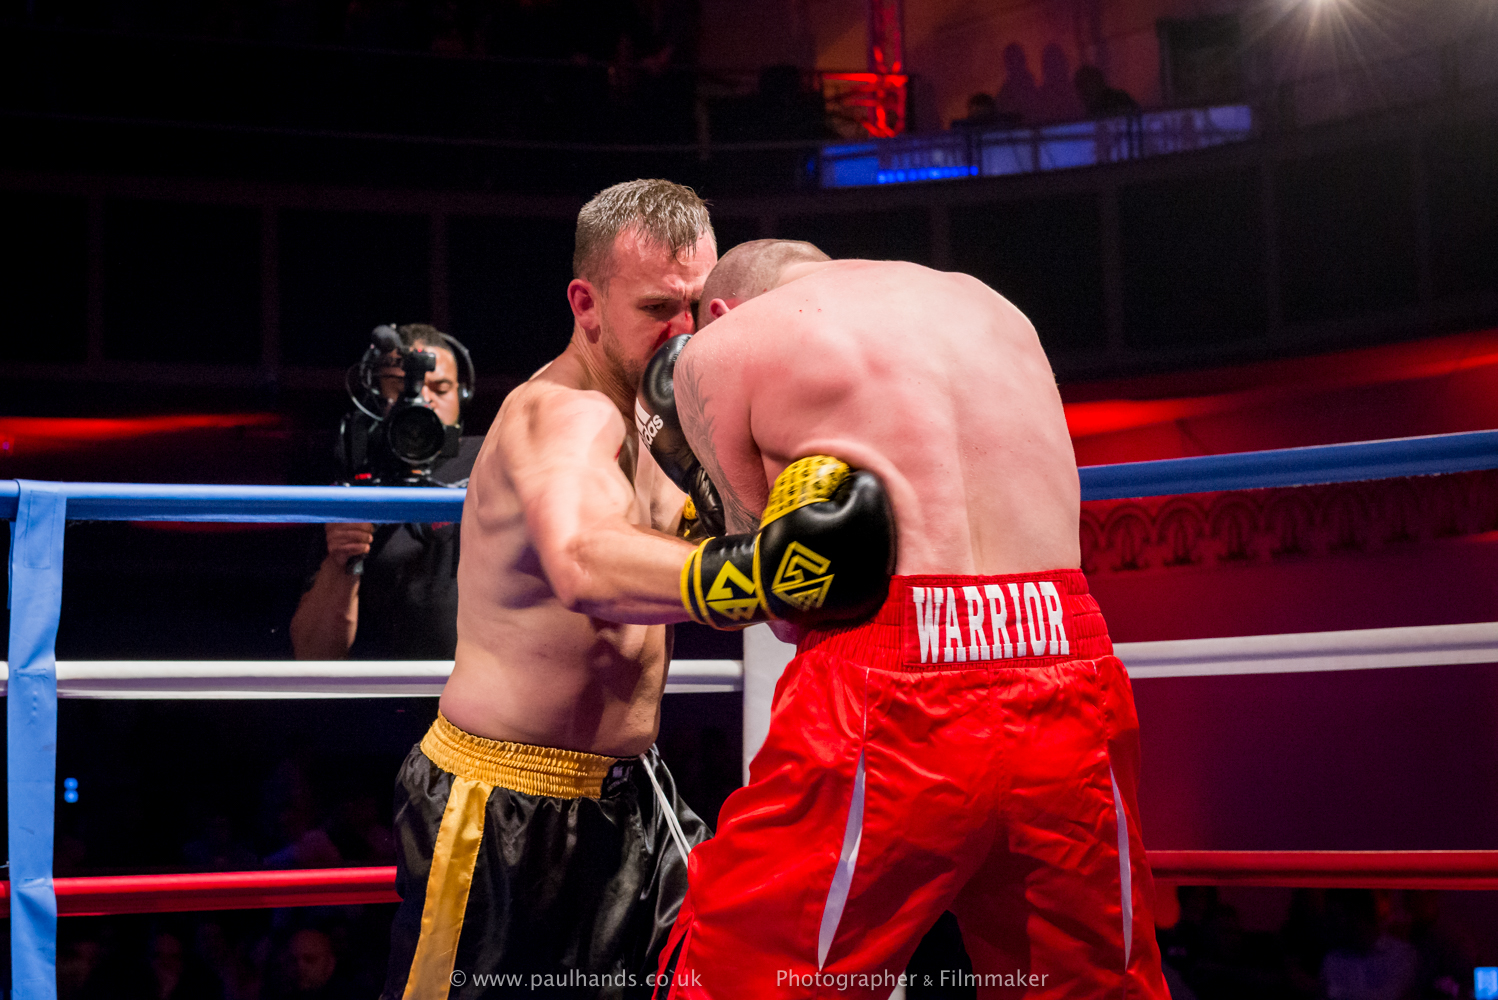 Dave Waring Vs Shane Ward